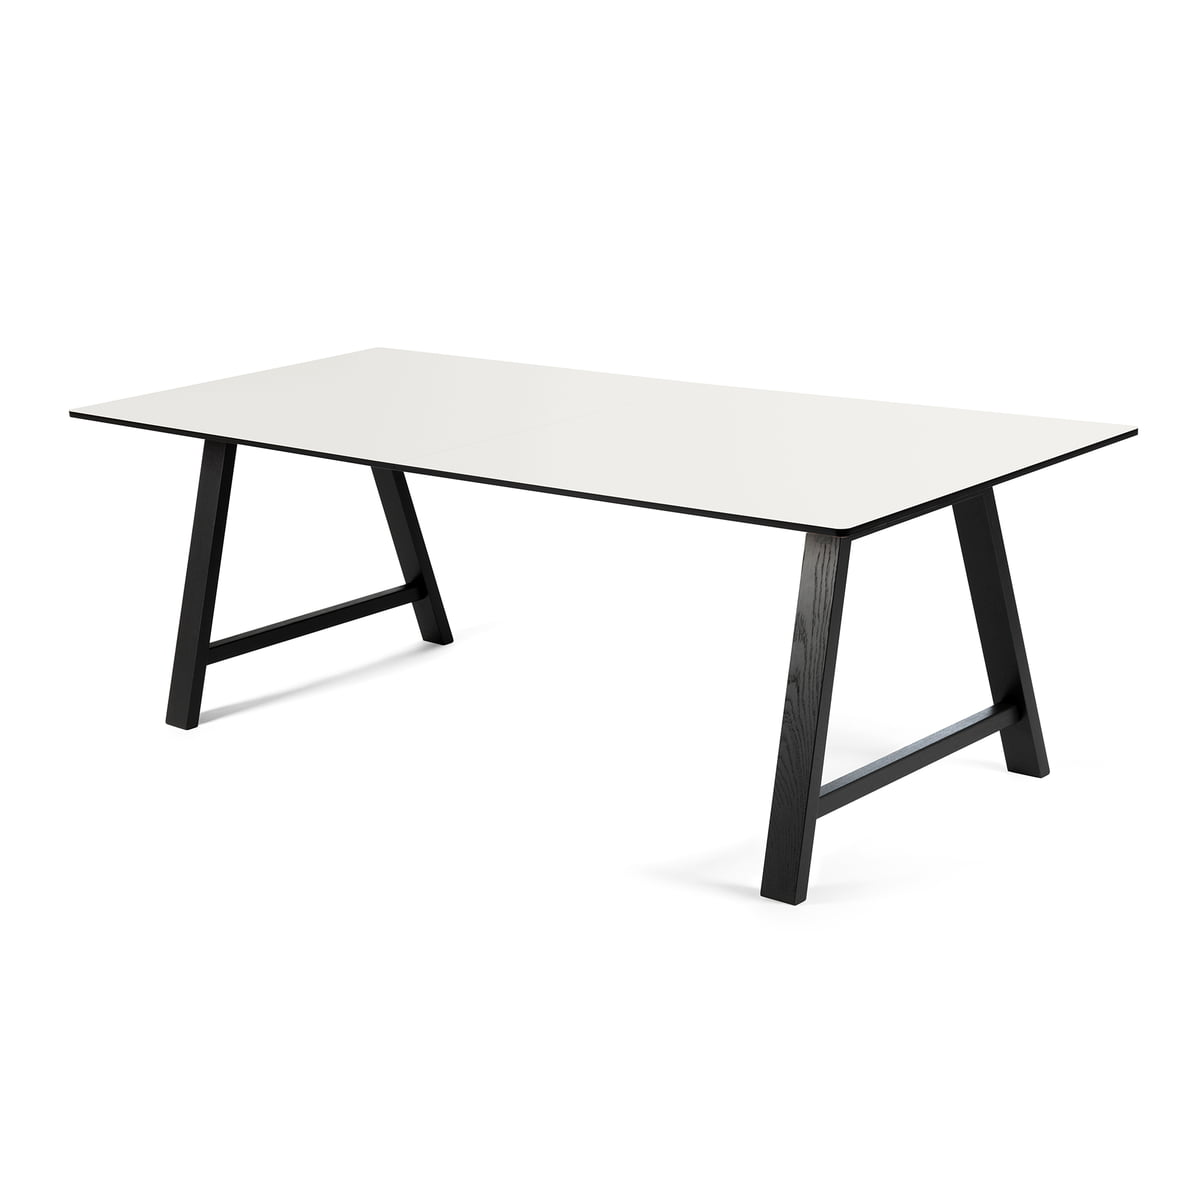 Ausziehtisch weiß  T1 Extending Table 180 cm Andersen Furniture